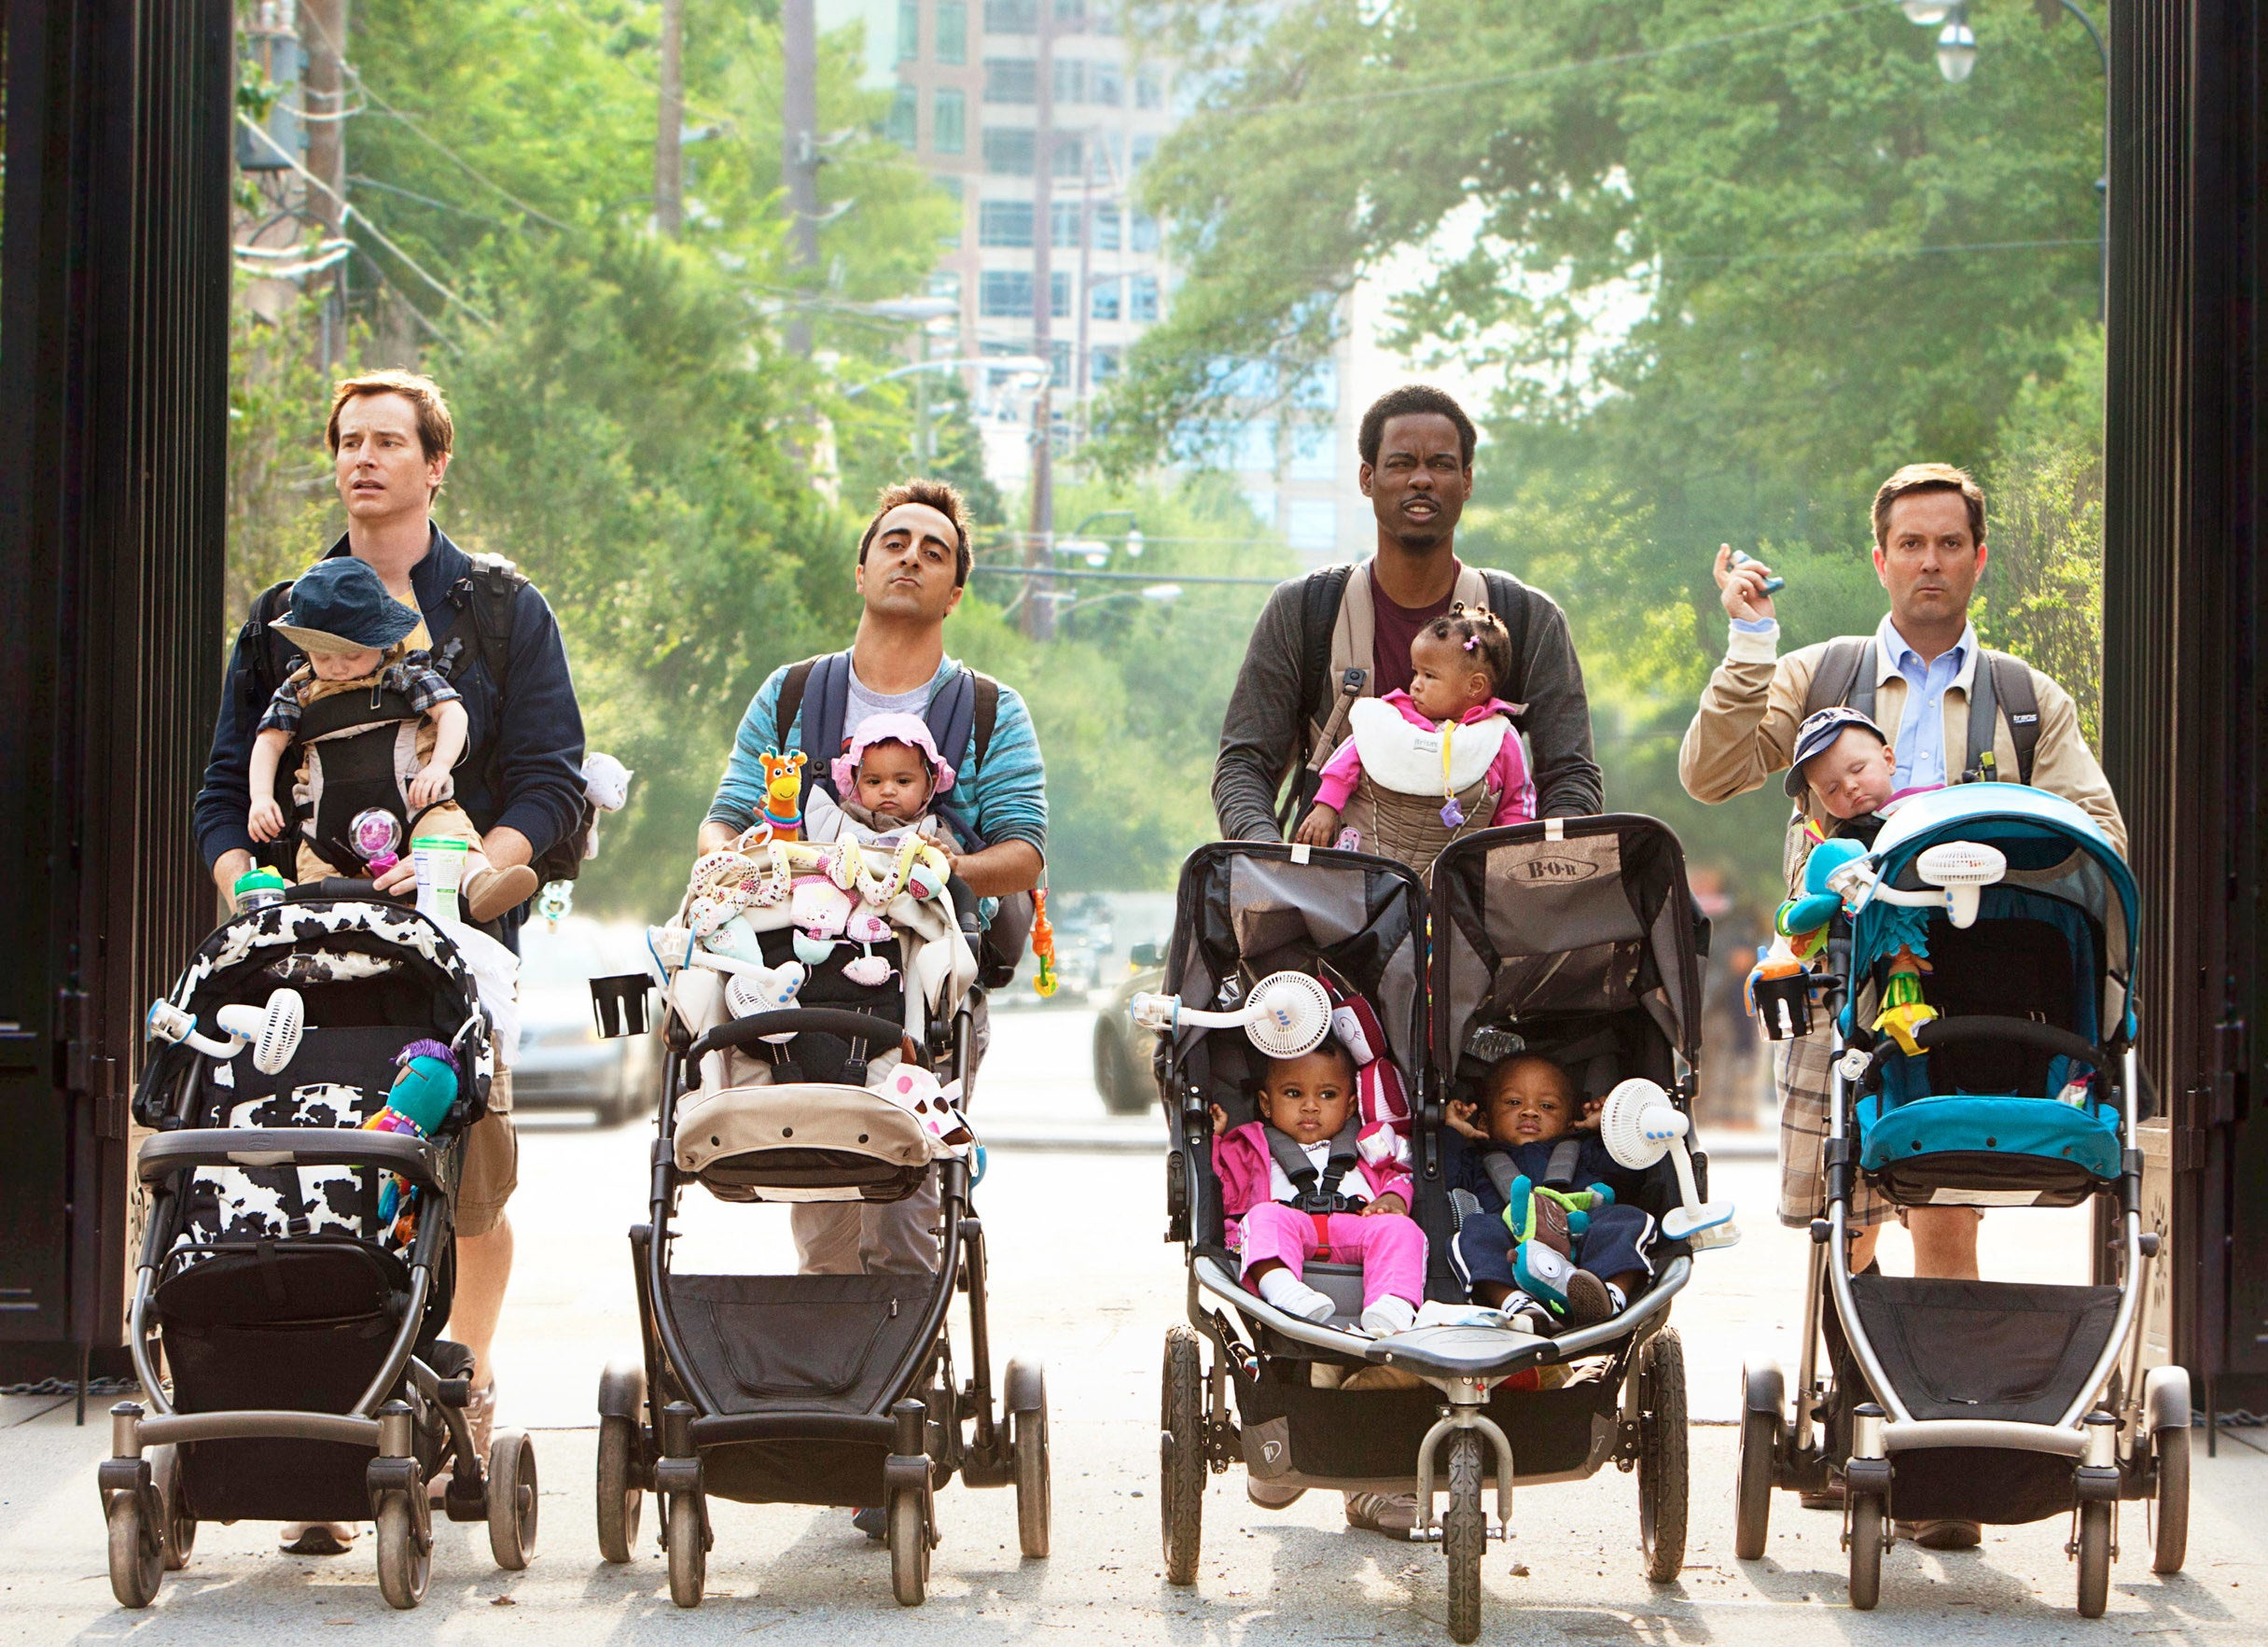 The dads walking with the babies